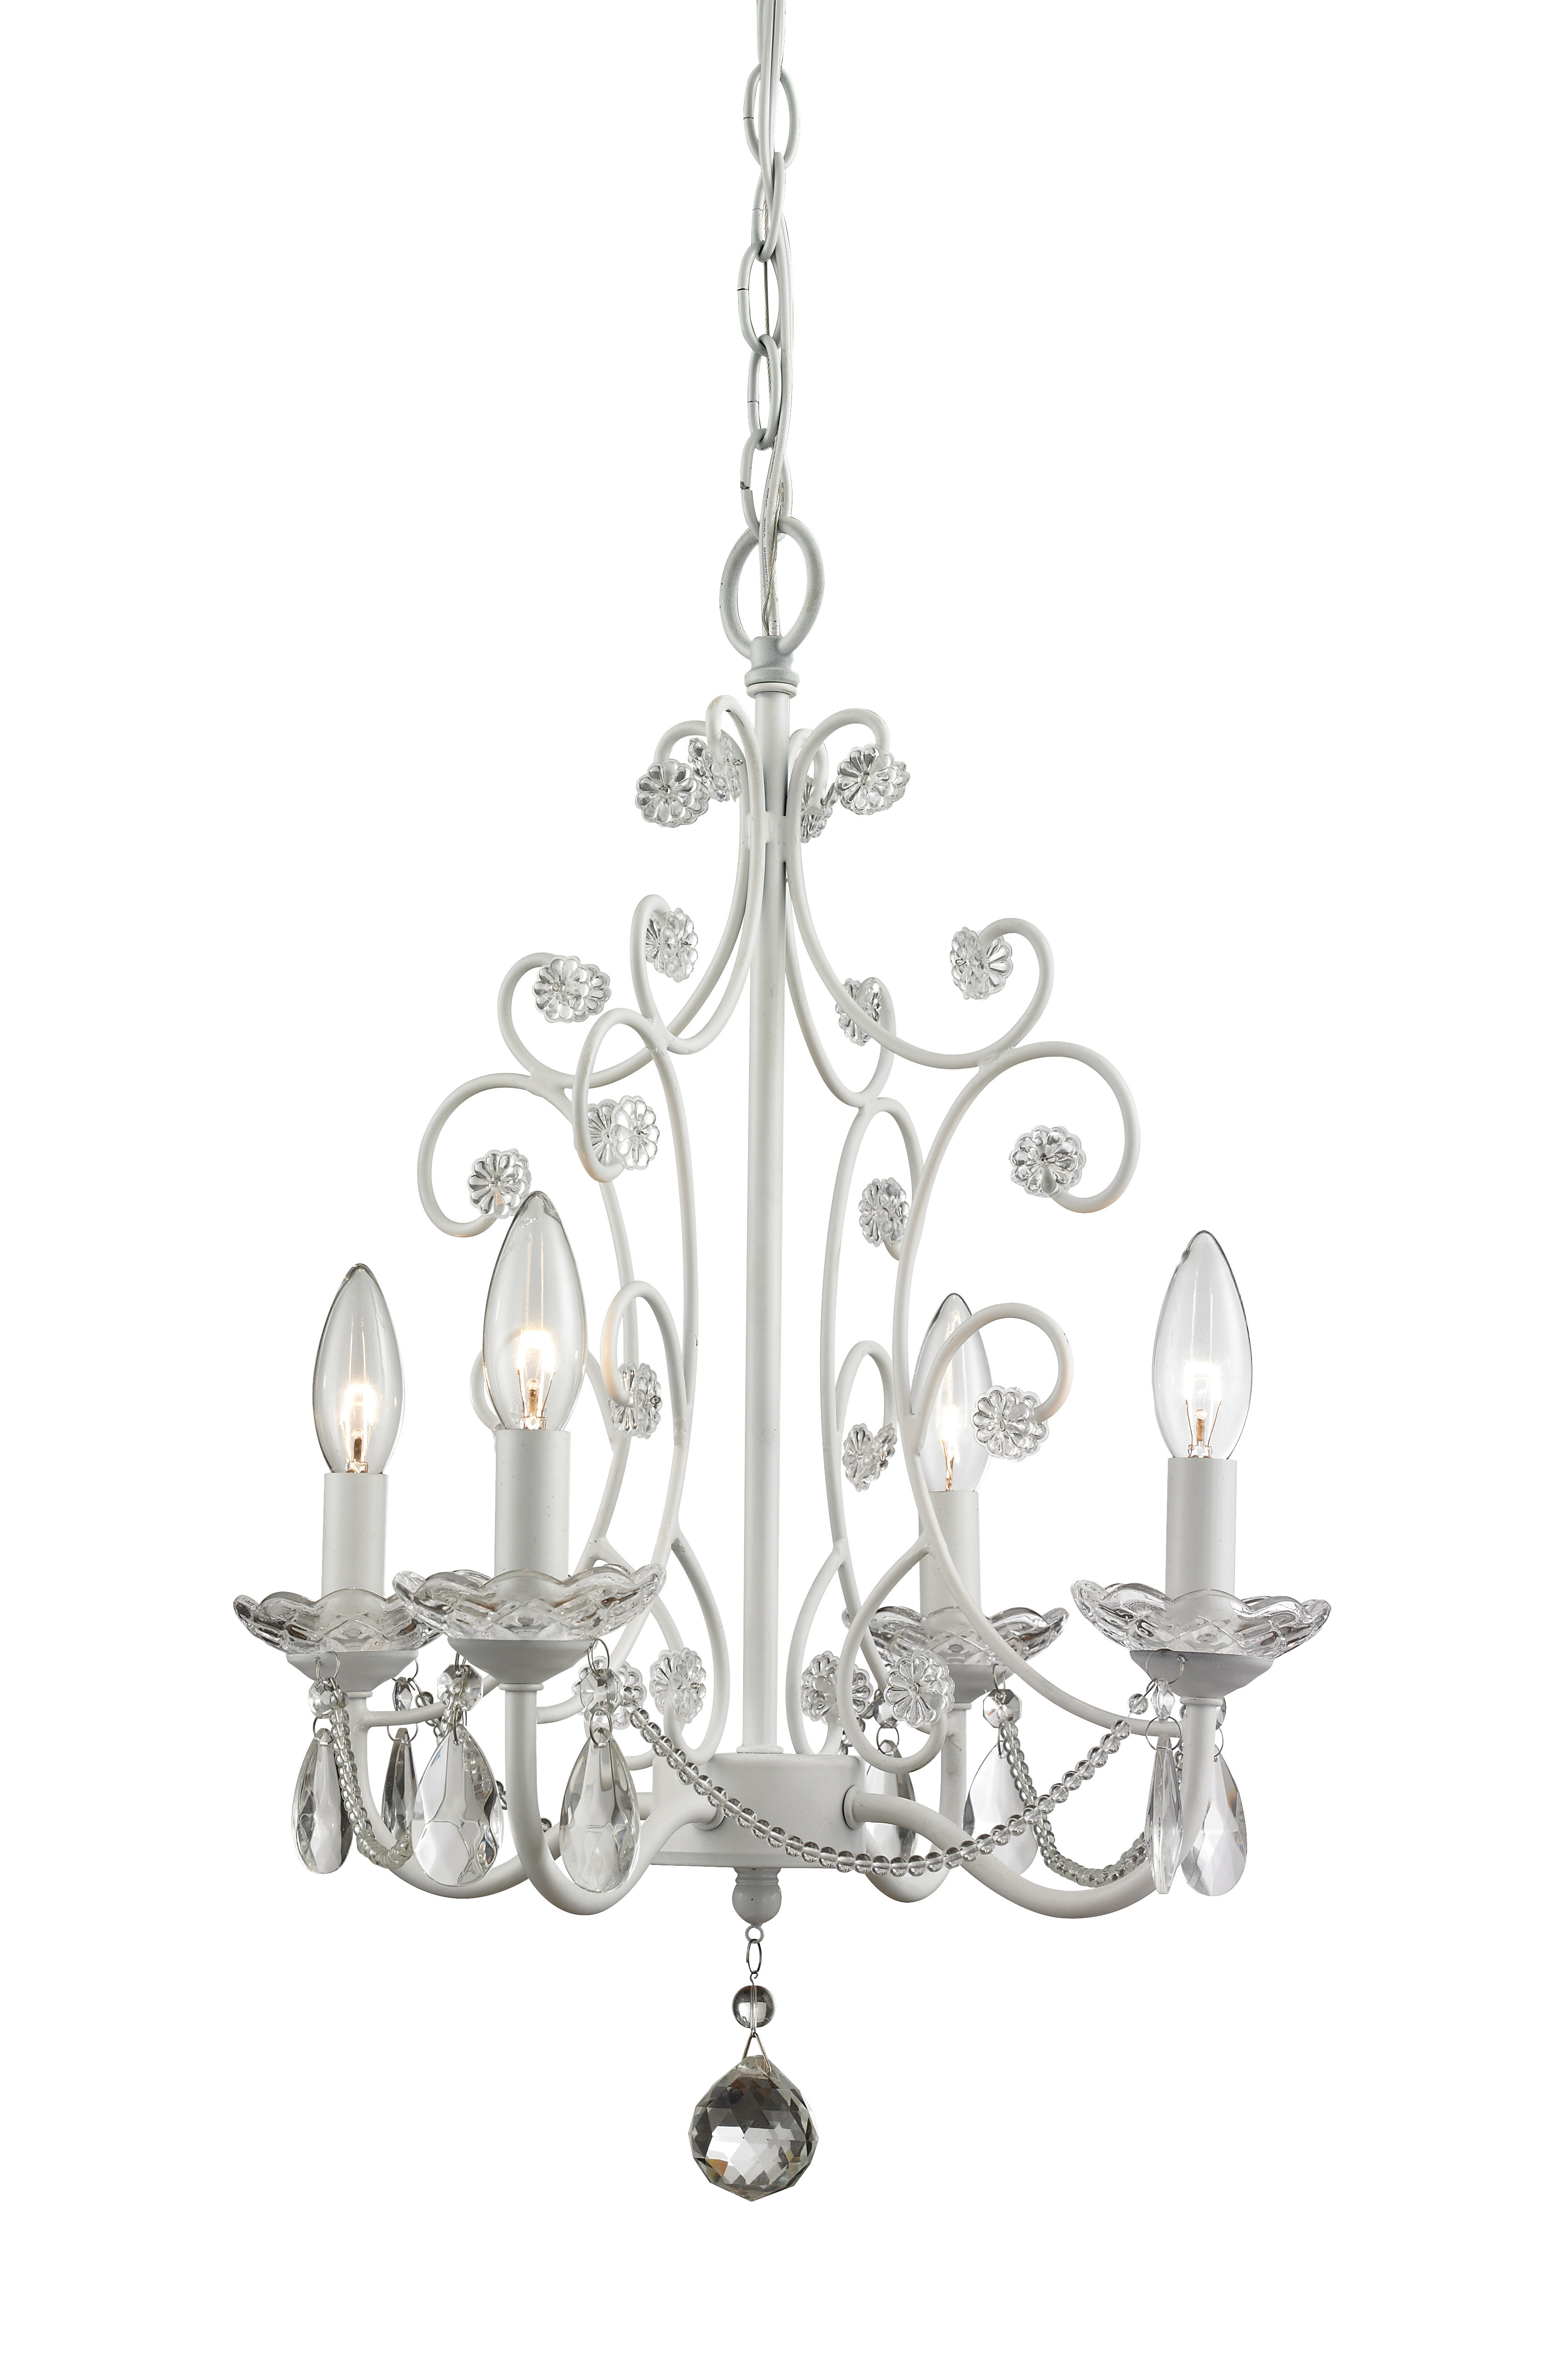 Aquilla 4 Light Candle Style Chandelier With Regard To Famous Oriana 4 Light Single Geometric Chandeliers (View 11 of 20)